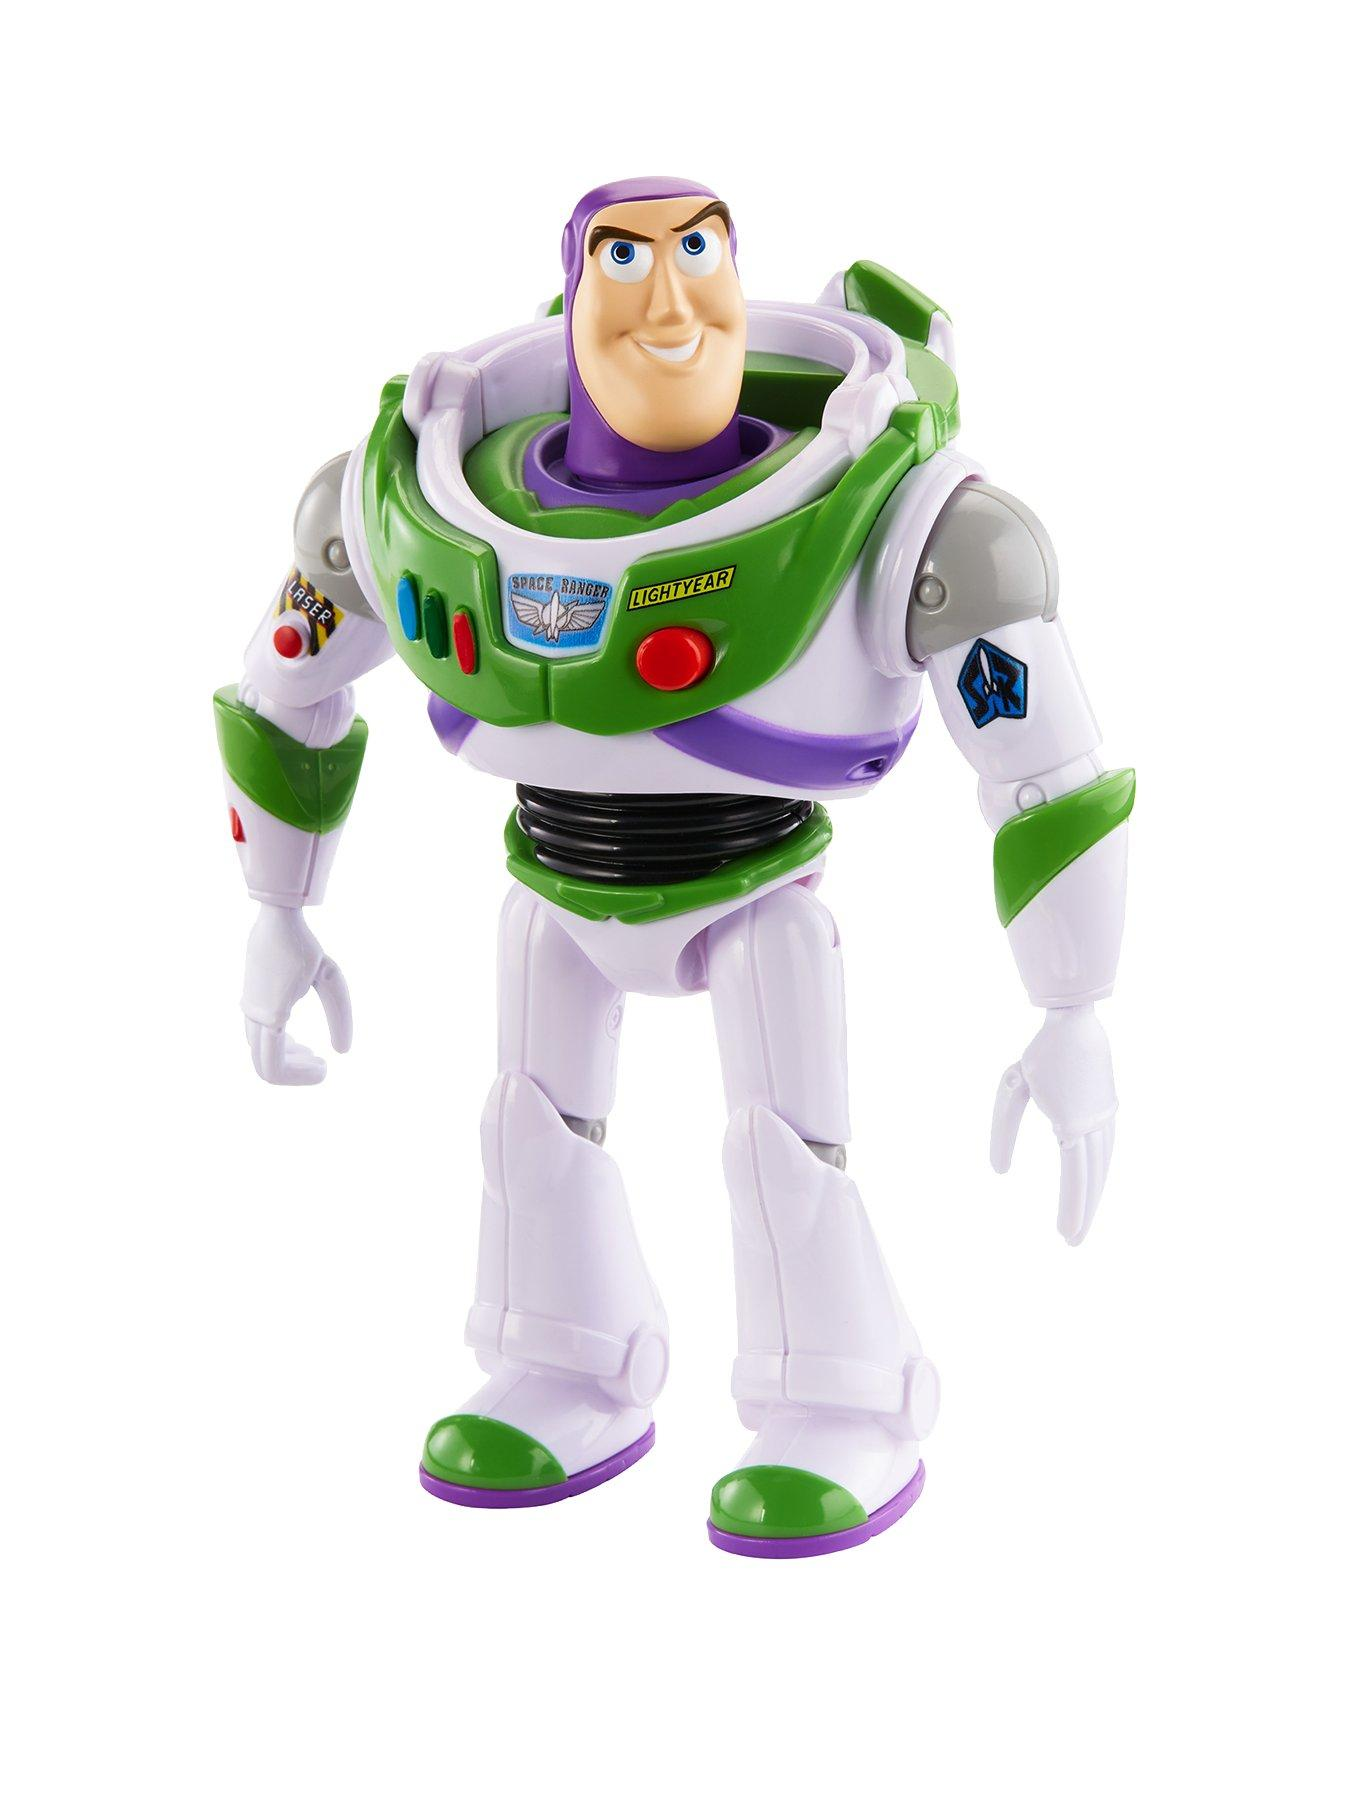 Toy Story 3 Buzz Lightyear Bracelet Building Blocks Toys Action Figures Children Gift Modern Techniques Action & Toy Figures